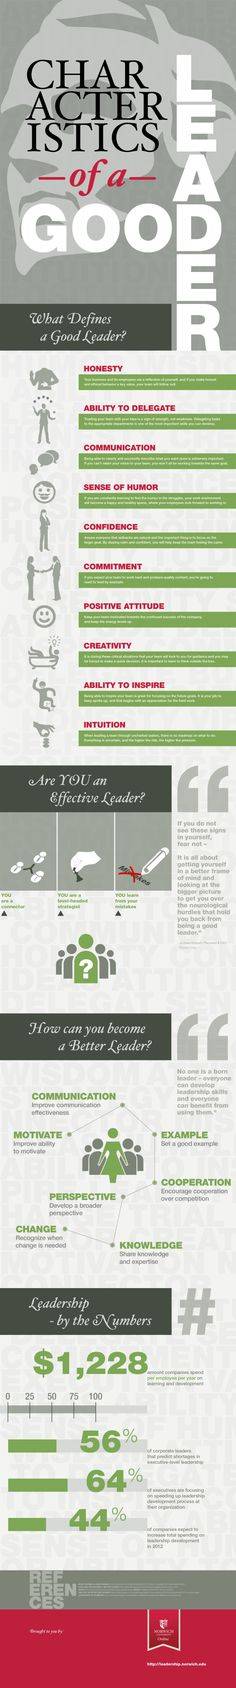 Characteristics of a Good Leader #INFOGRAPHIC #infografía